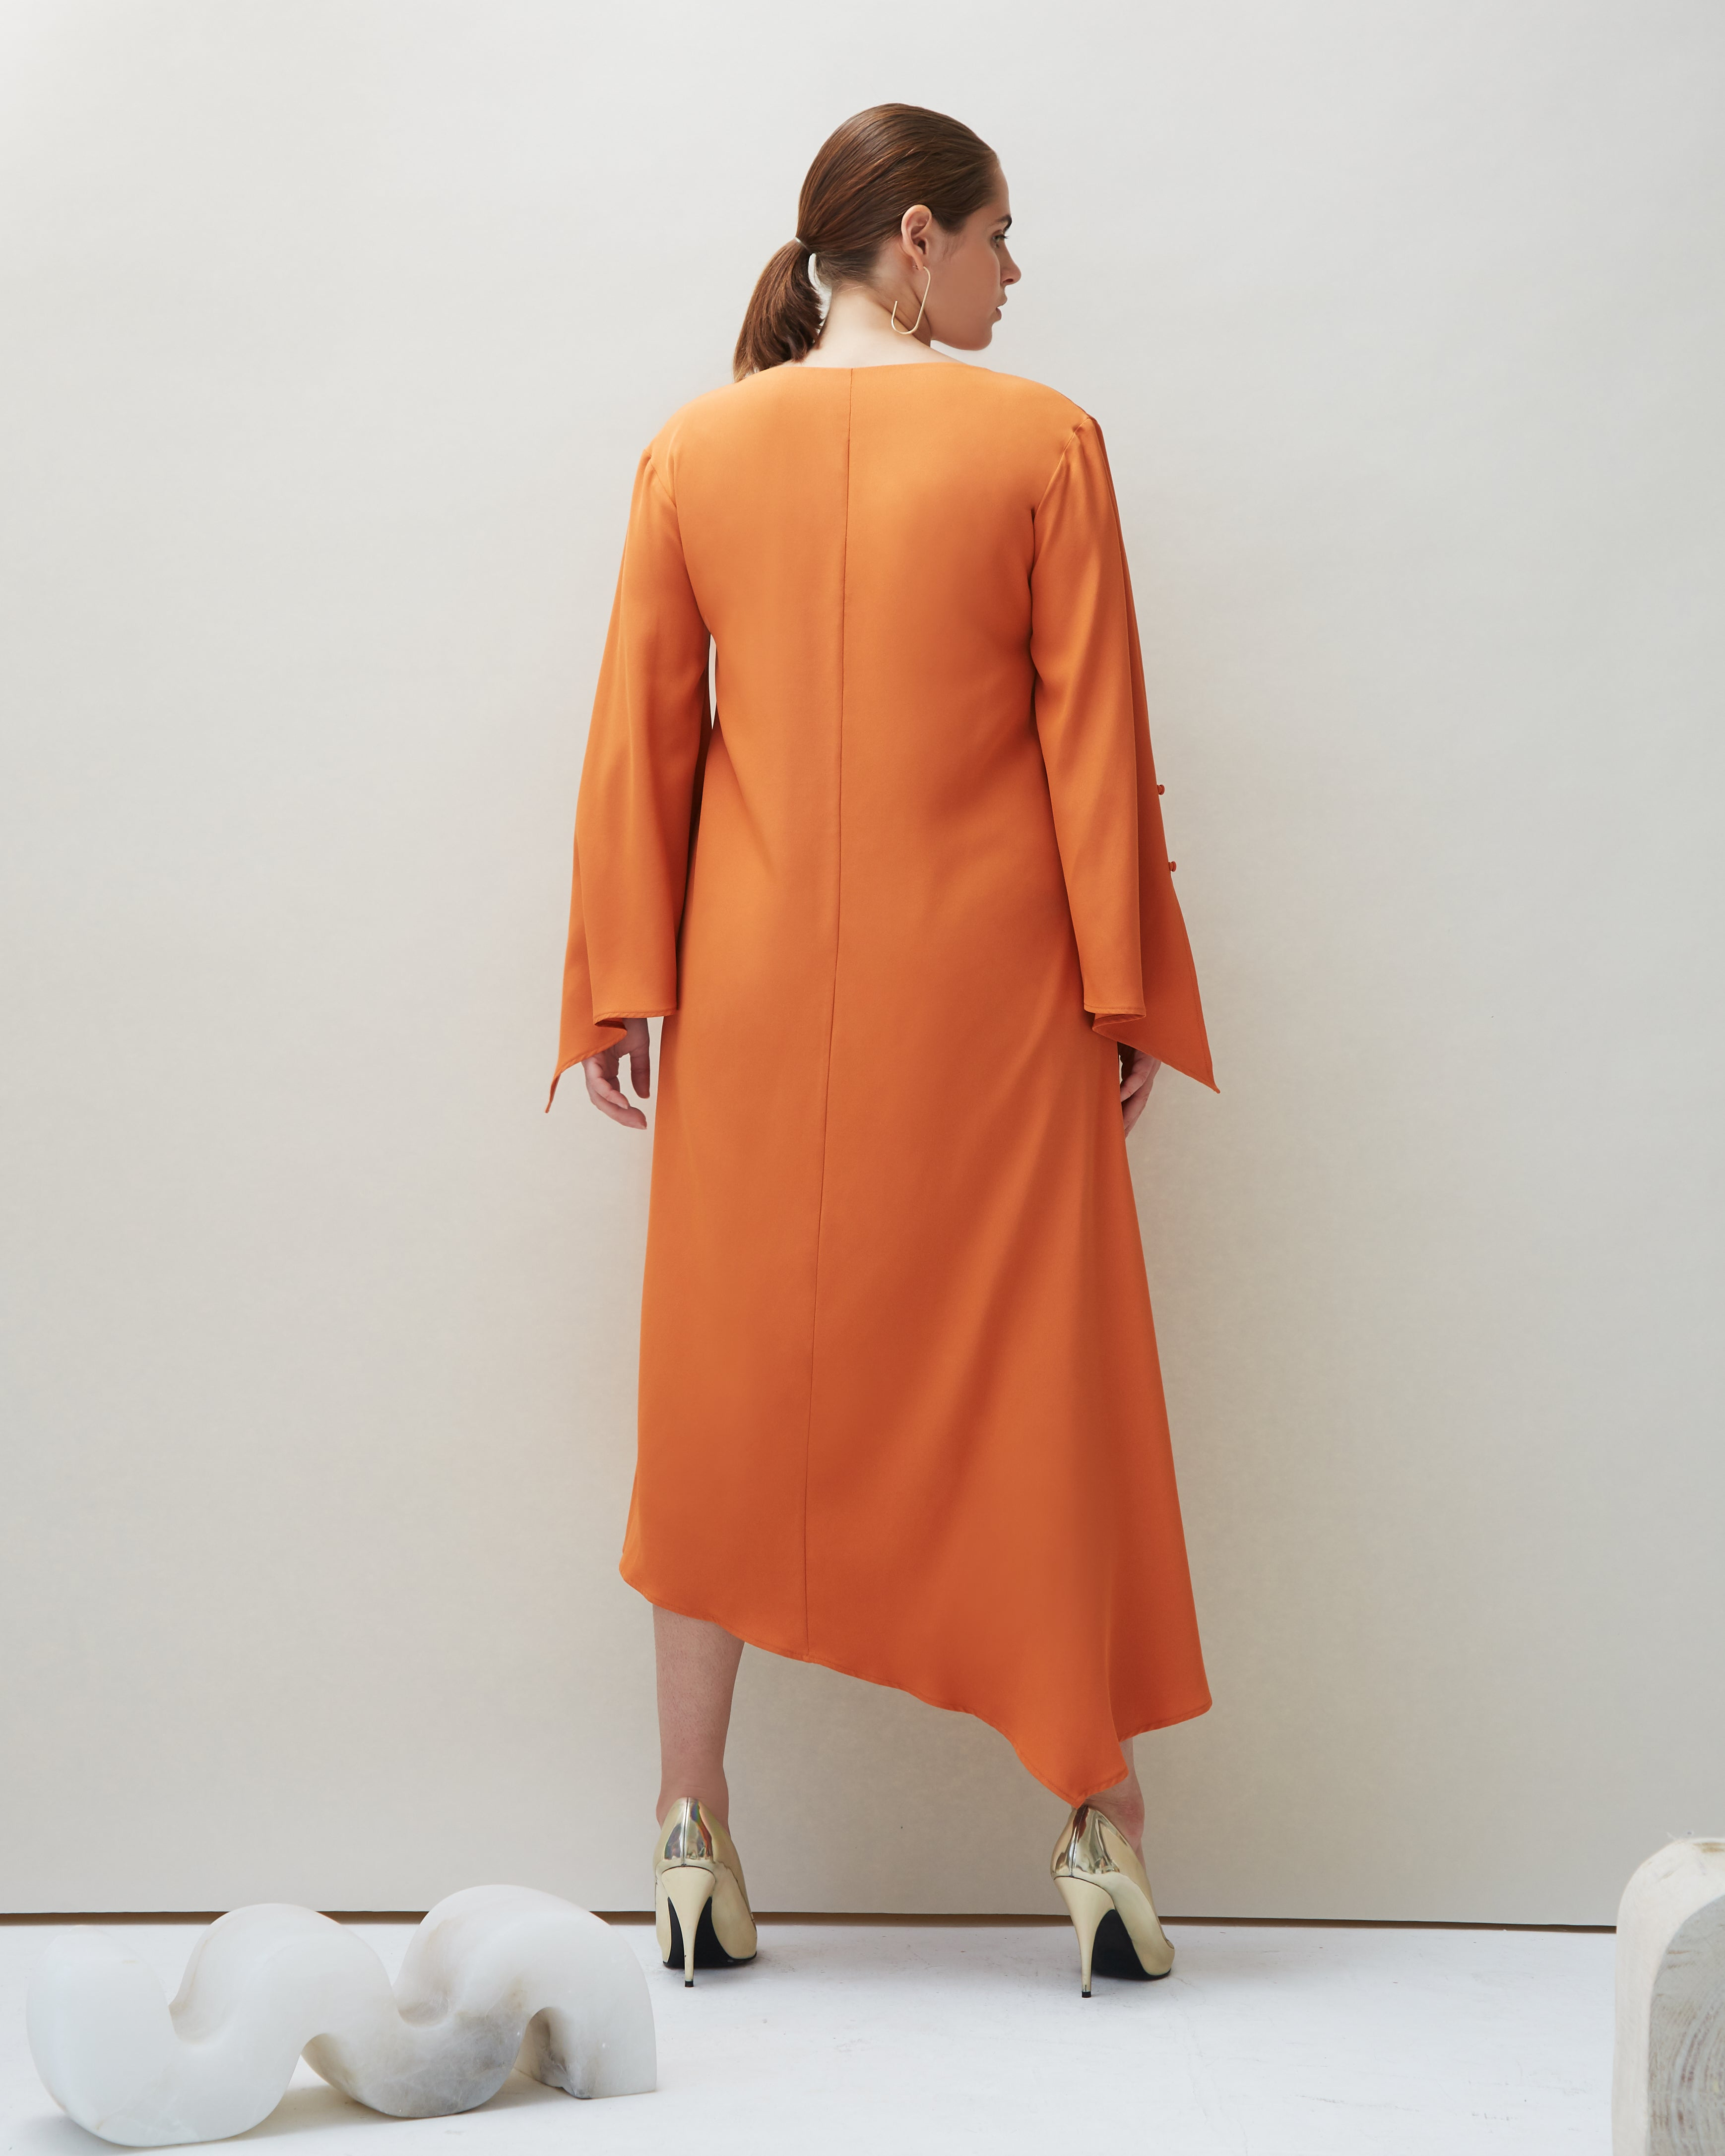 Dua Dress in Orange - COYAN